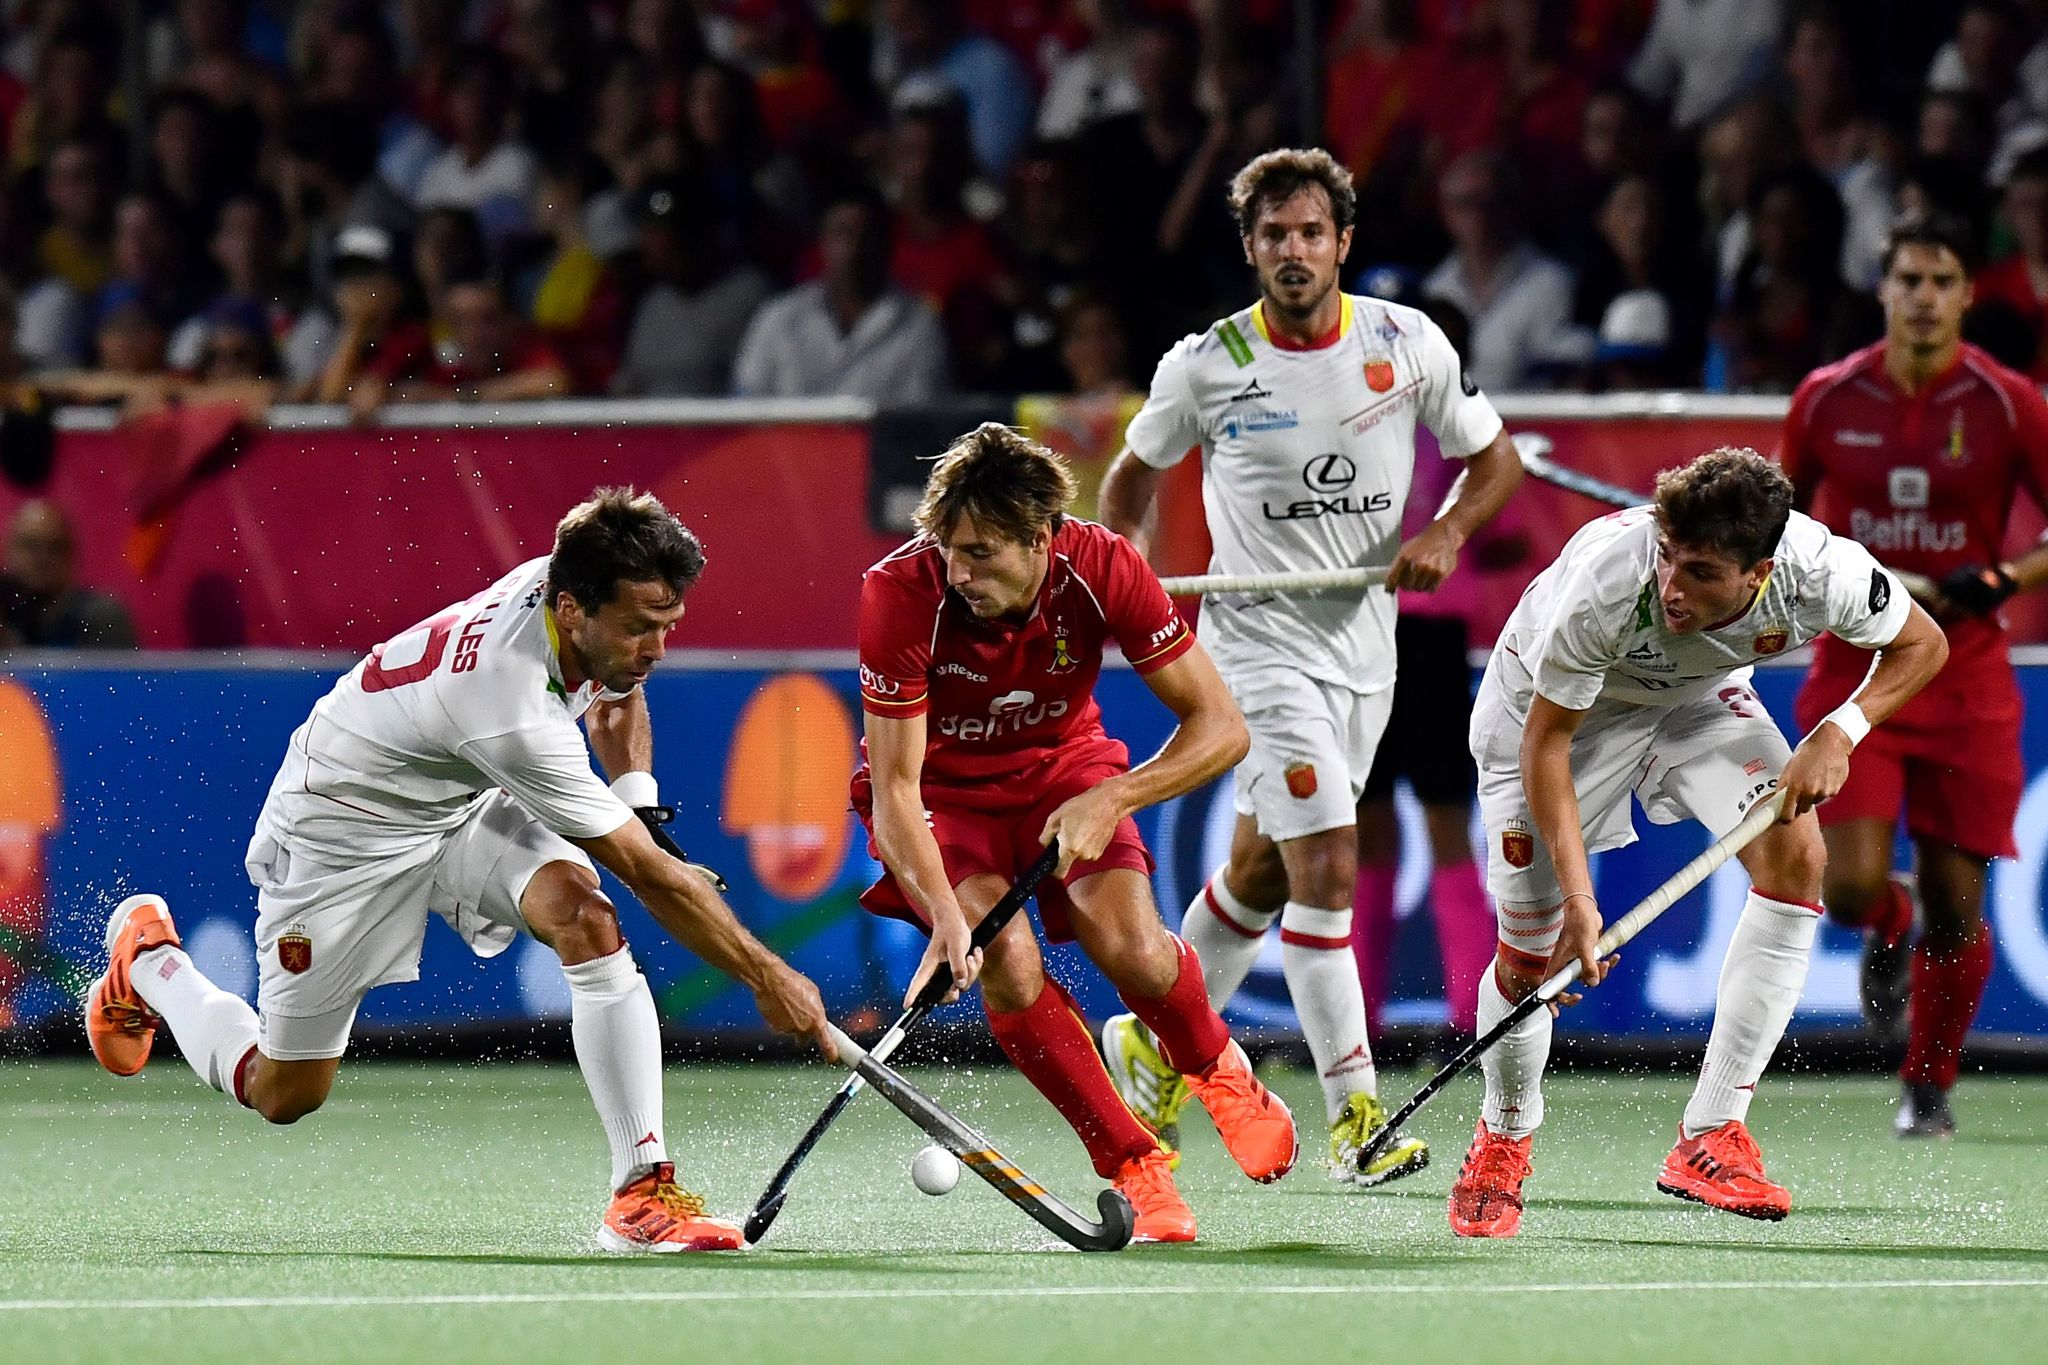 Spain's Marc Salles and Belgium's Antoine Kina vie during the 'EuroHockey' European Championships <HIT>hockey</HIT> match finals between Belgian national team The Red Lions and Spain, on August 24, 2019 in Wilrijk, Antwerp. (Photo by DIRK WAEM / BELGA / AFP) / Belgium OUT